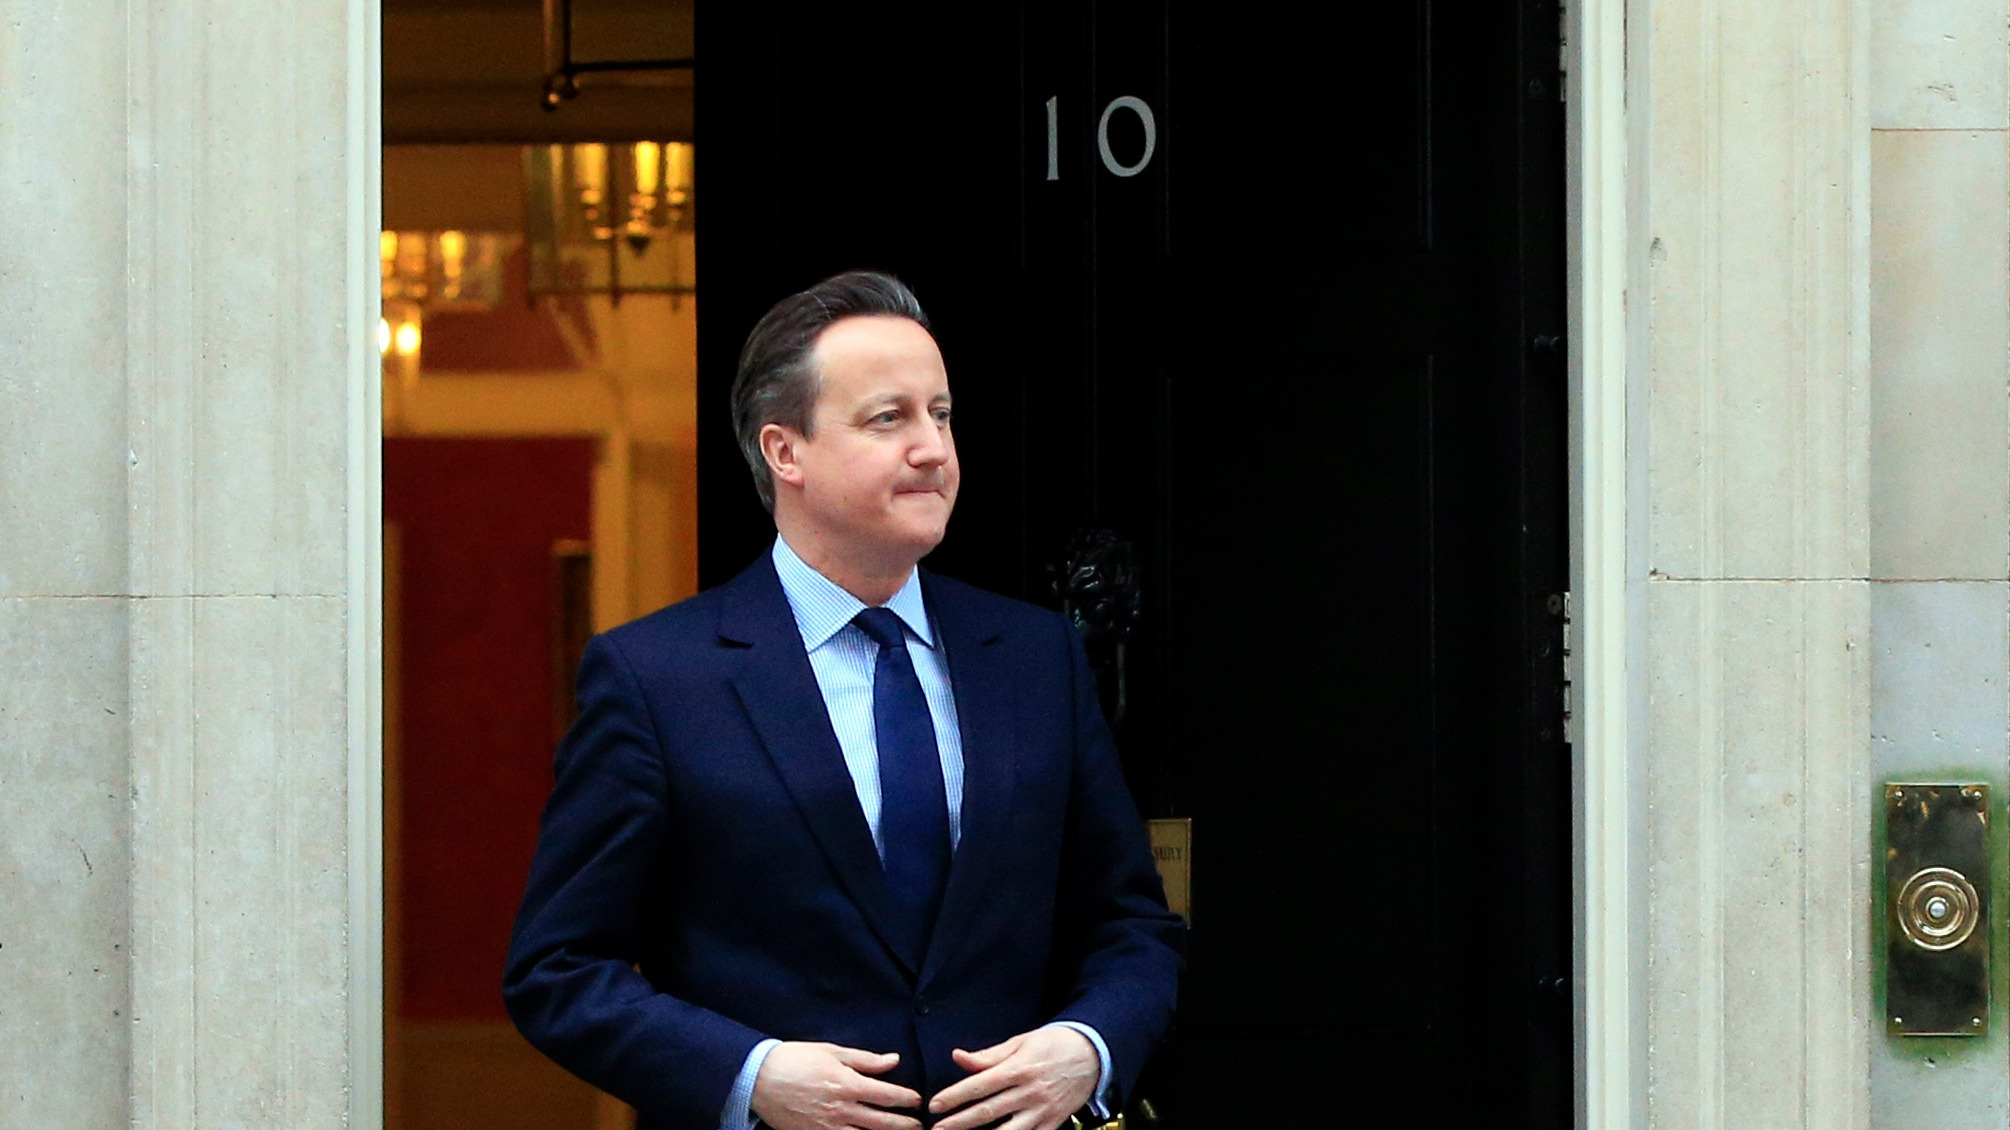 Cameron benefited from 'tax-free' Prime Ministerial perk